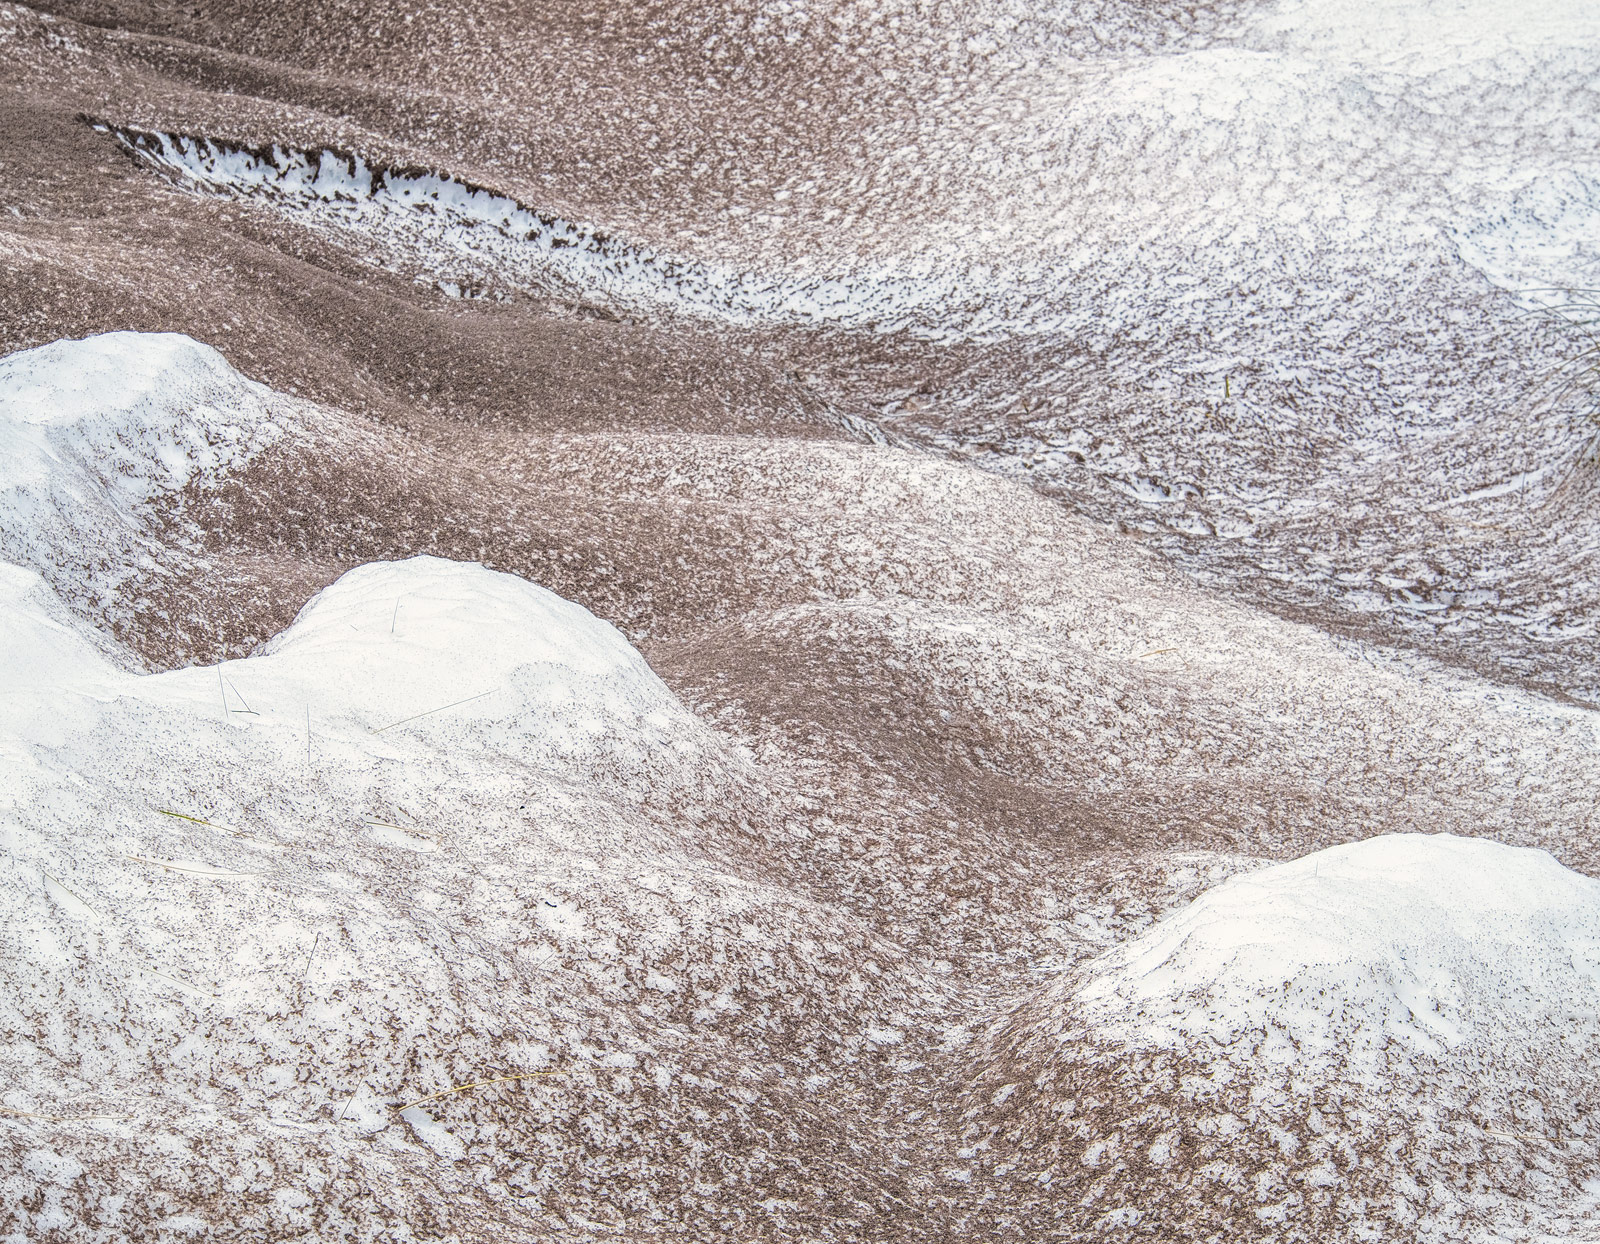 The second of a selection of winter dune shots taken after the ridiculously heavy and record breaking snowfall that struck Ullapool...